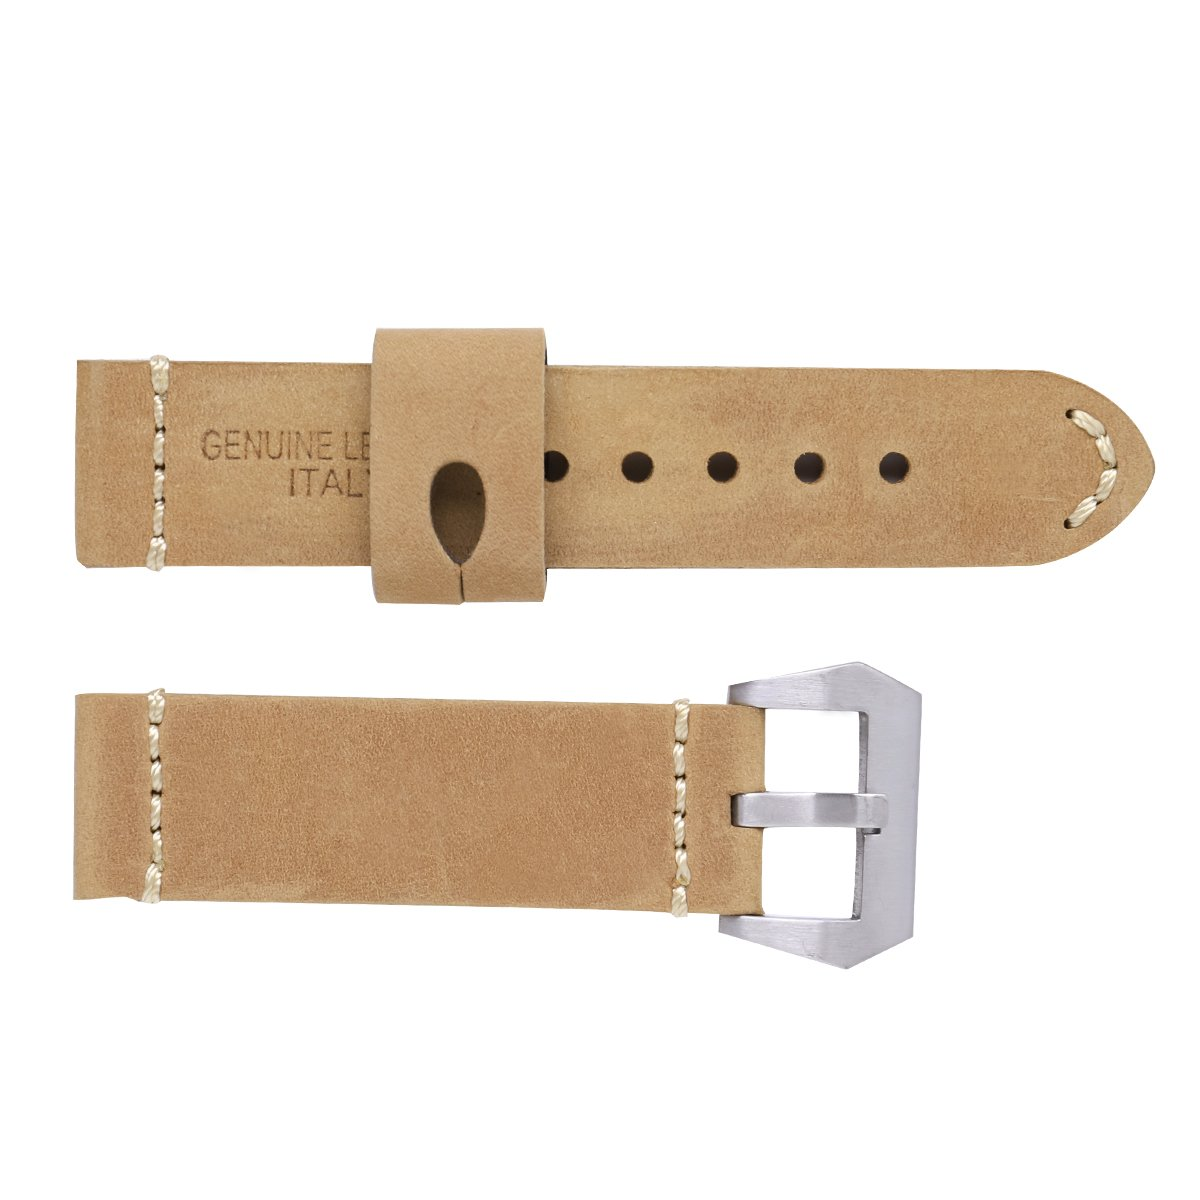 UEETEK 26mm Watch Strap Durable Calfskin Genuine Leather Watch Band Wristband for Watch Replacement (Light Coffee with Silver Buckle) by UEETEK